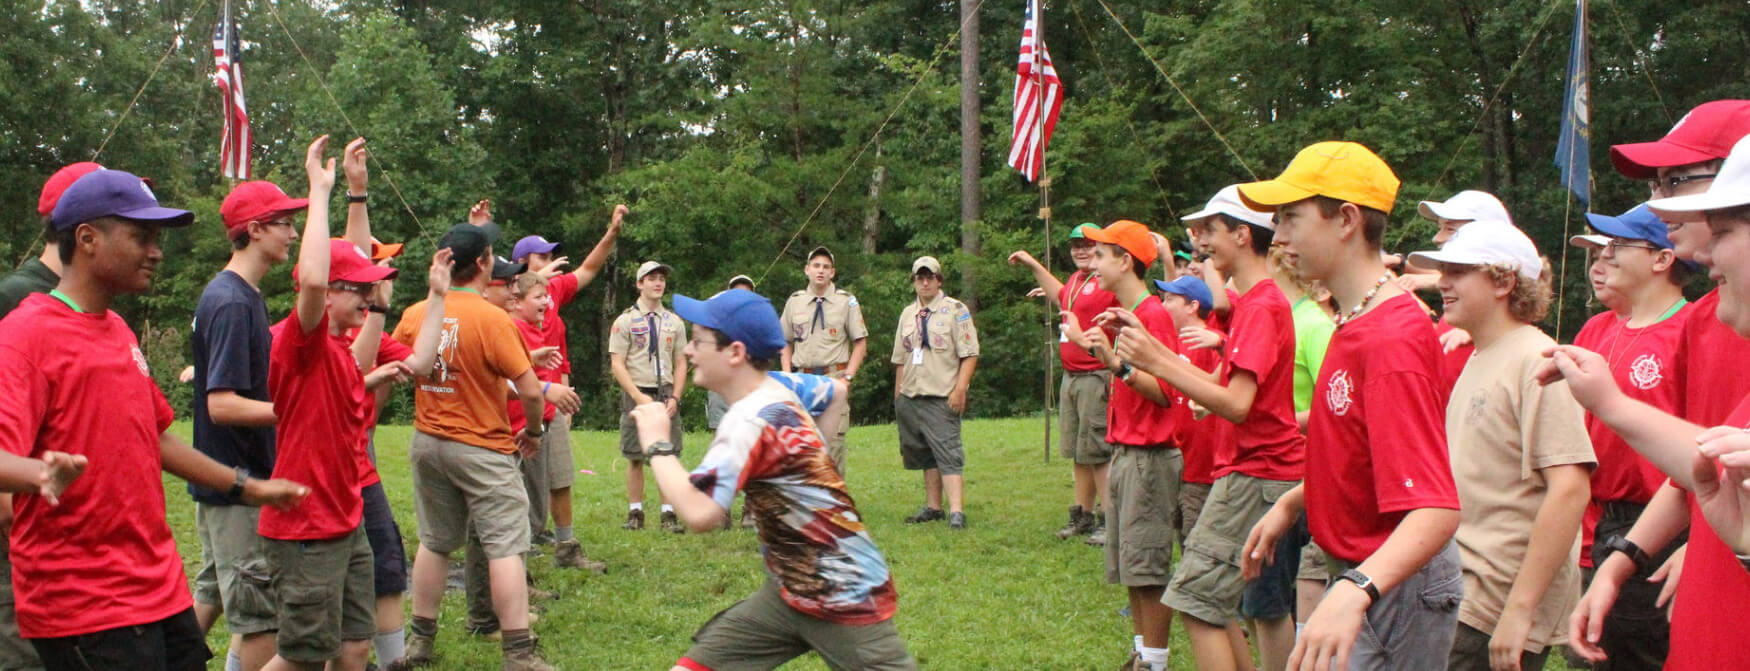 Scouts playing a game at NYLT